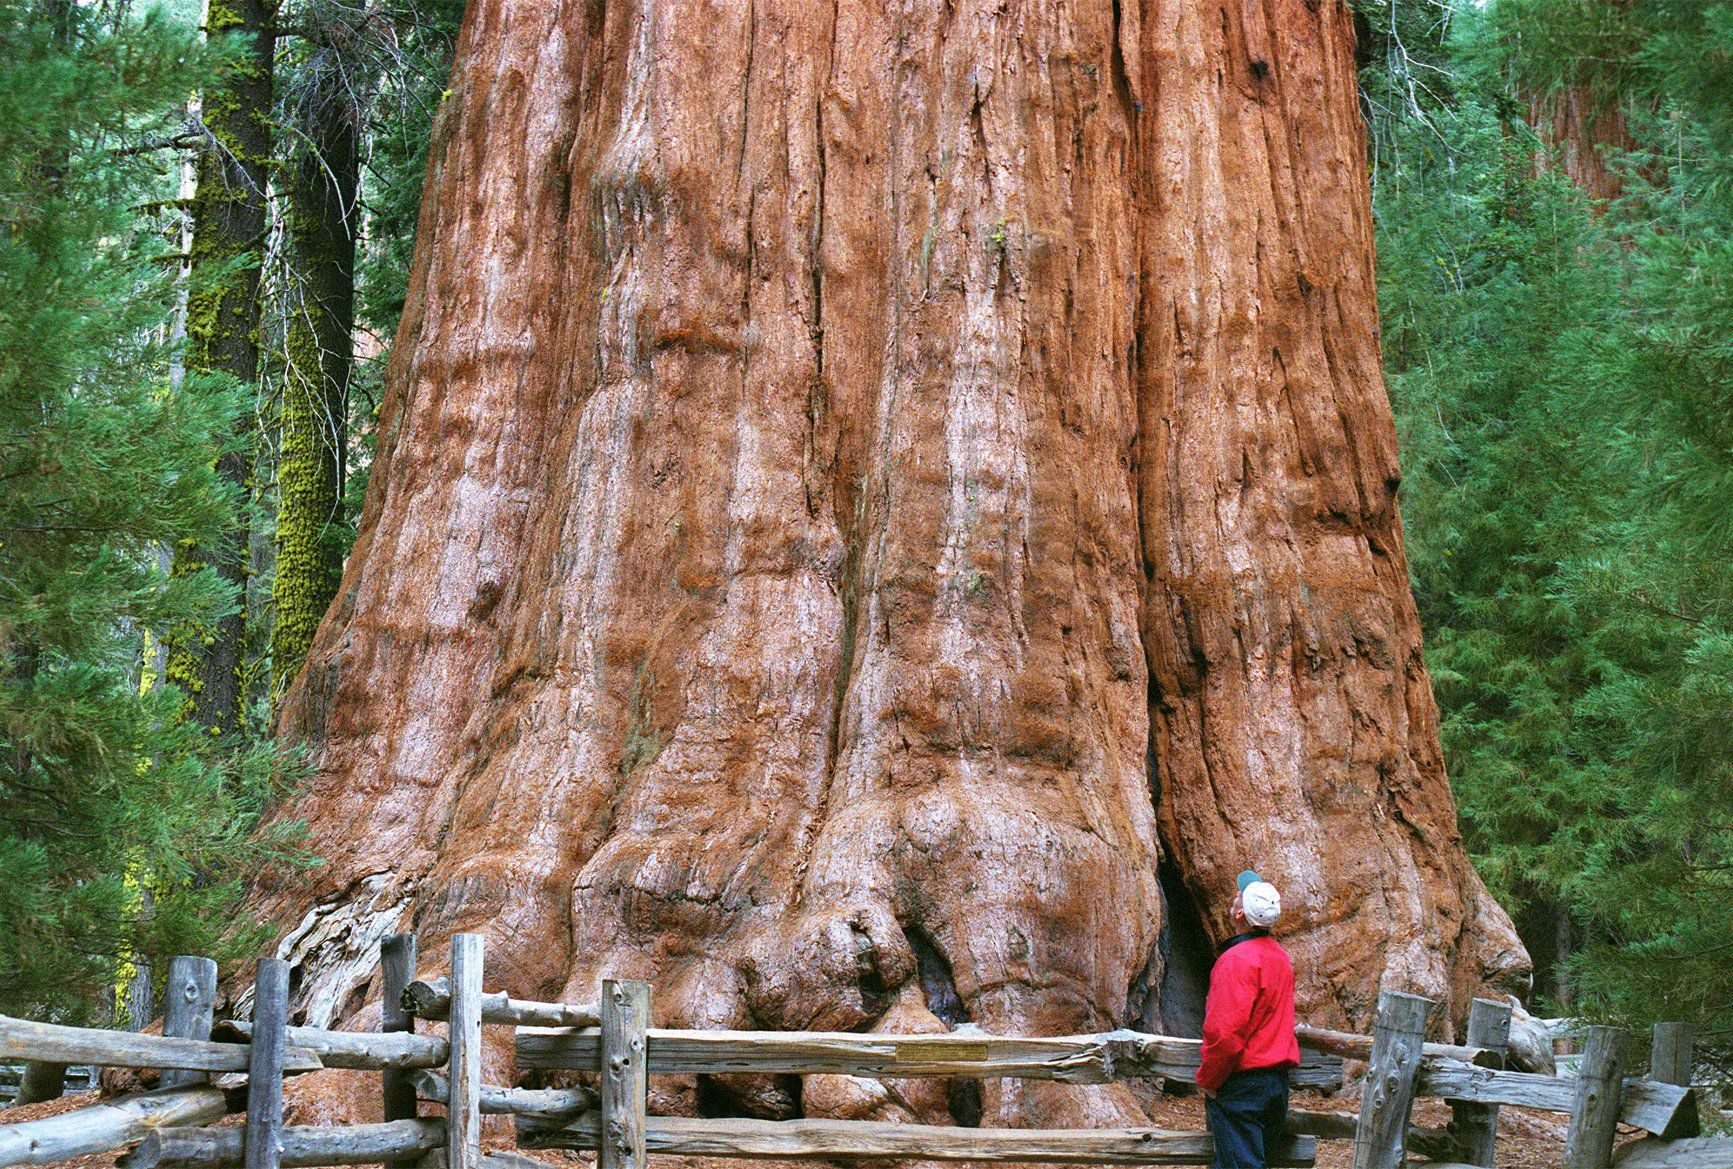 The World S Largest Living Tree By Volume Online Stltoday Com